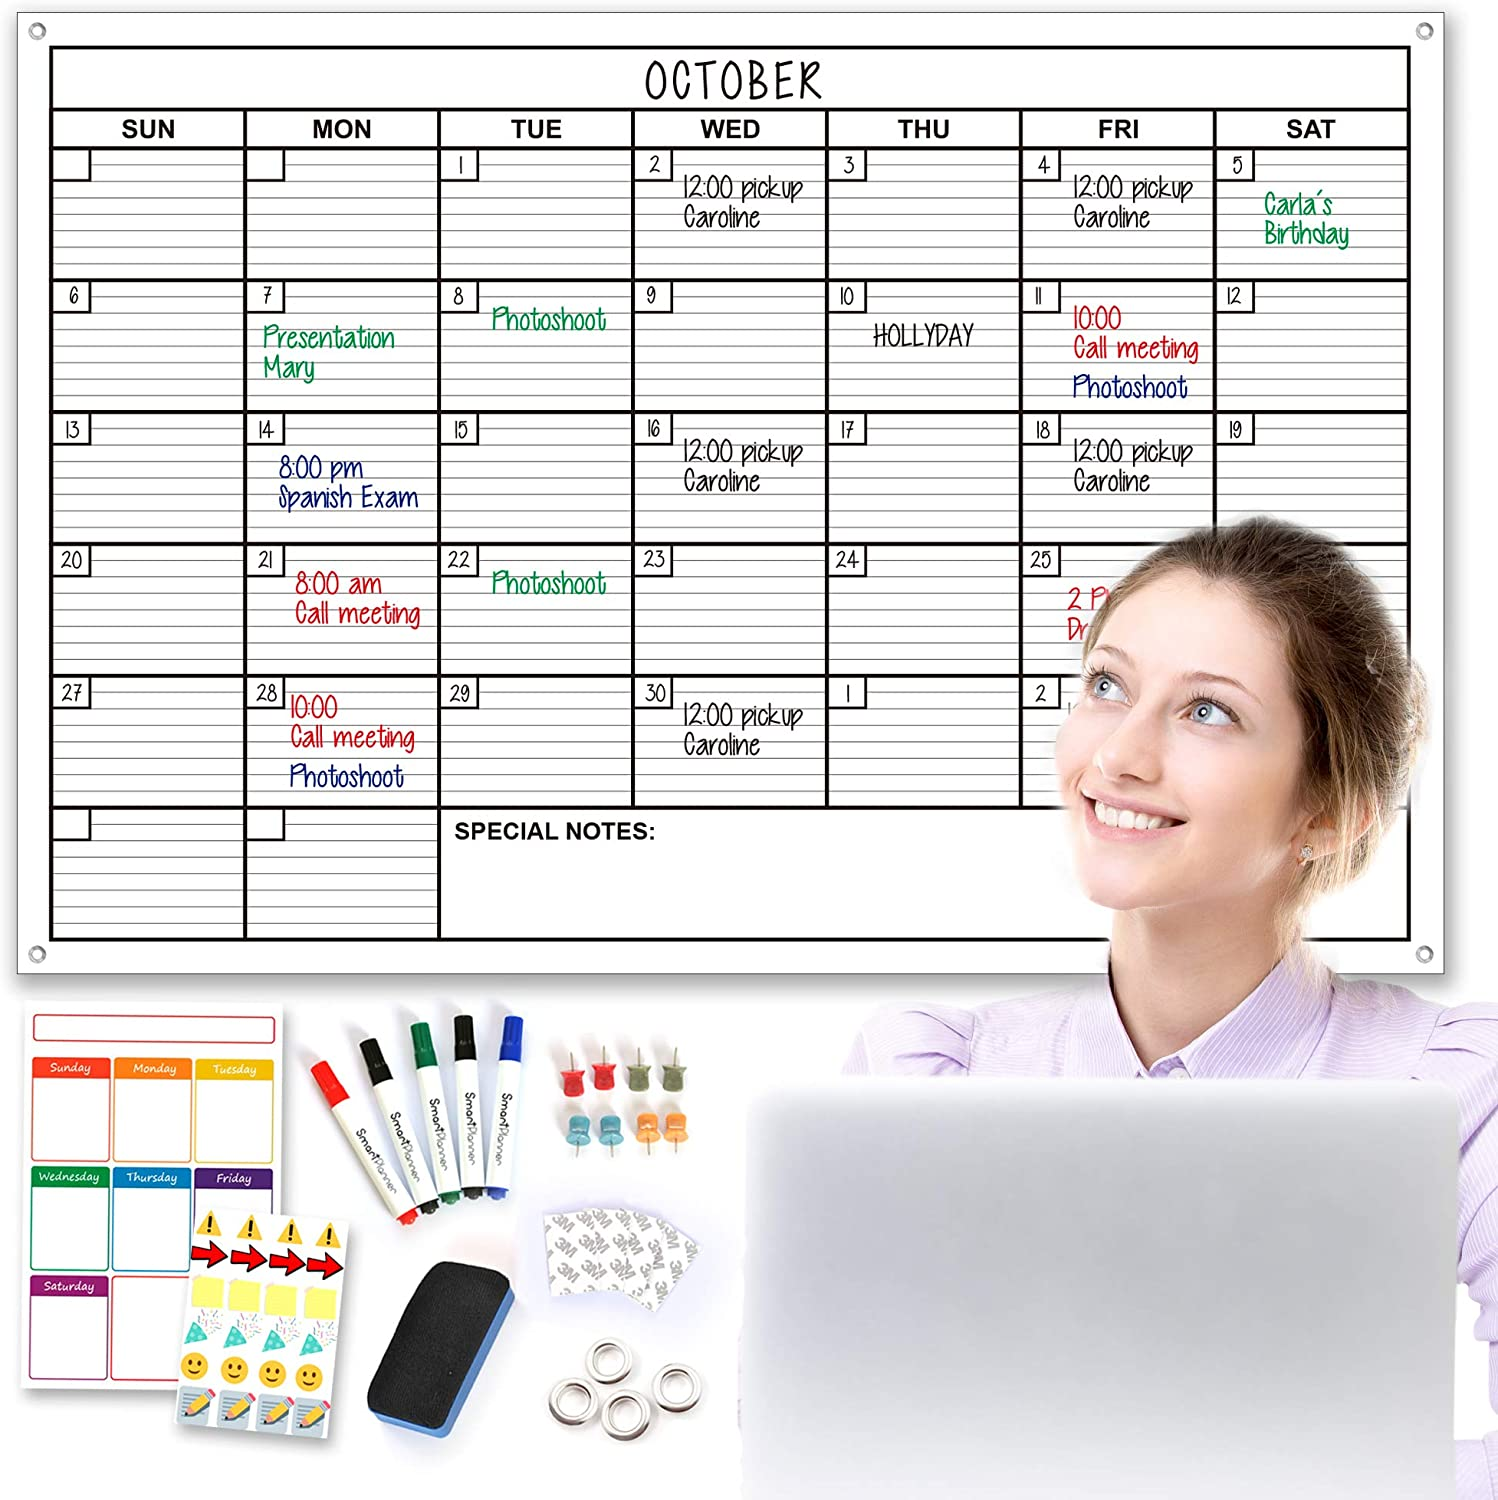 Smart Planner Extra Large Monthly Dry Erase Wall Calendar Set, 24 by 36 inches, Bonus: Super Useful Weekly Calendar, 5 Markers, 1 Eraser, 8 Tacks, 4 Double Sided Tape, 24 Stickers, 4 Metal Holes